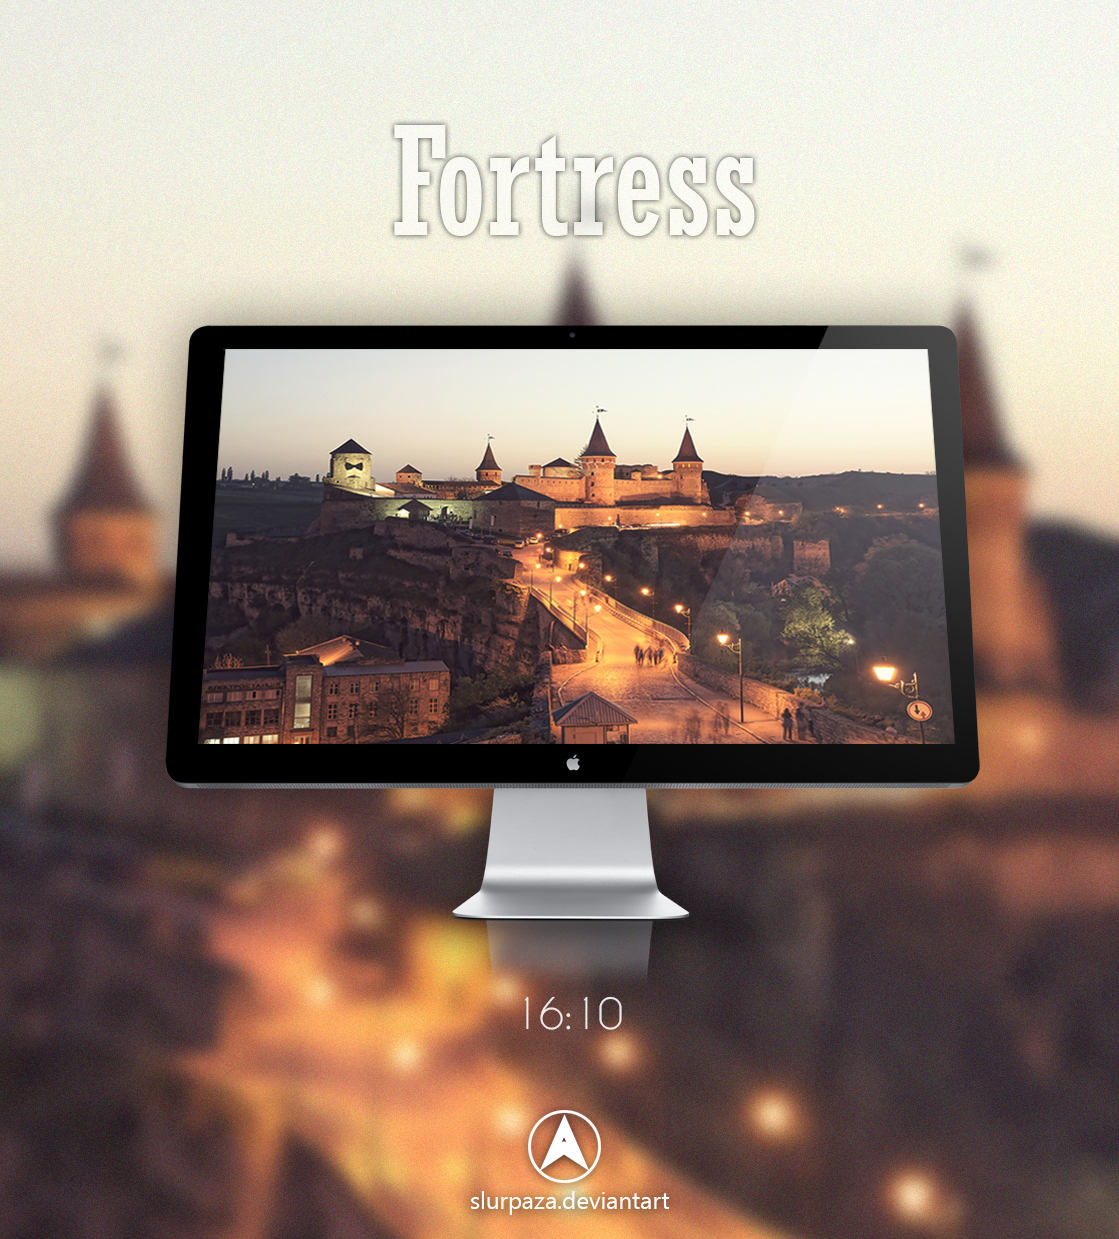 Fortress by Slurpaza